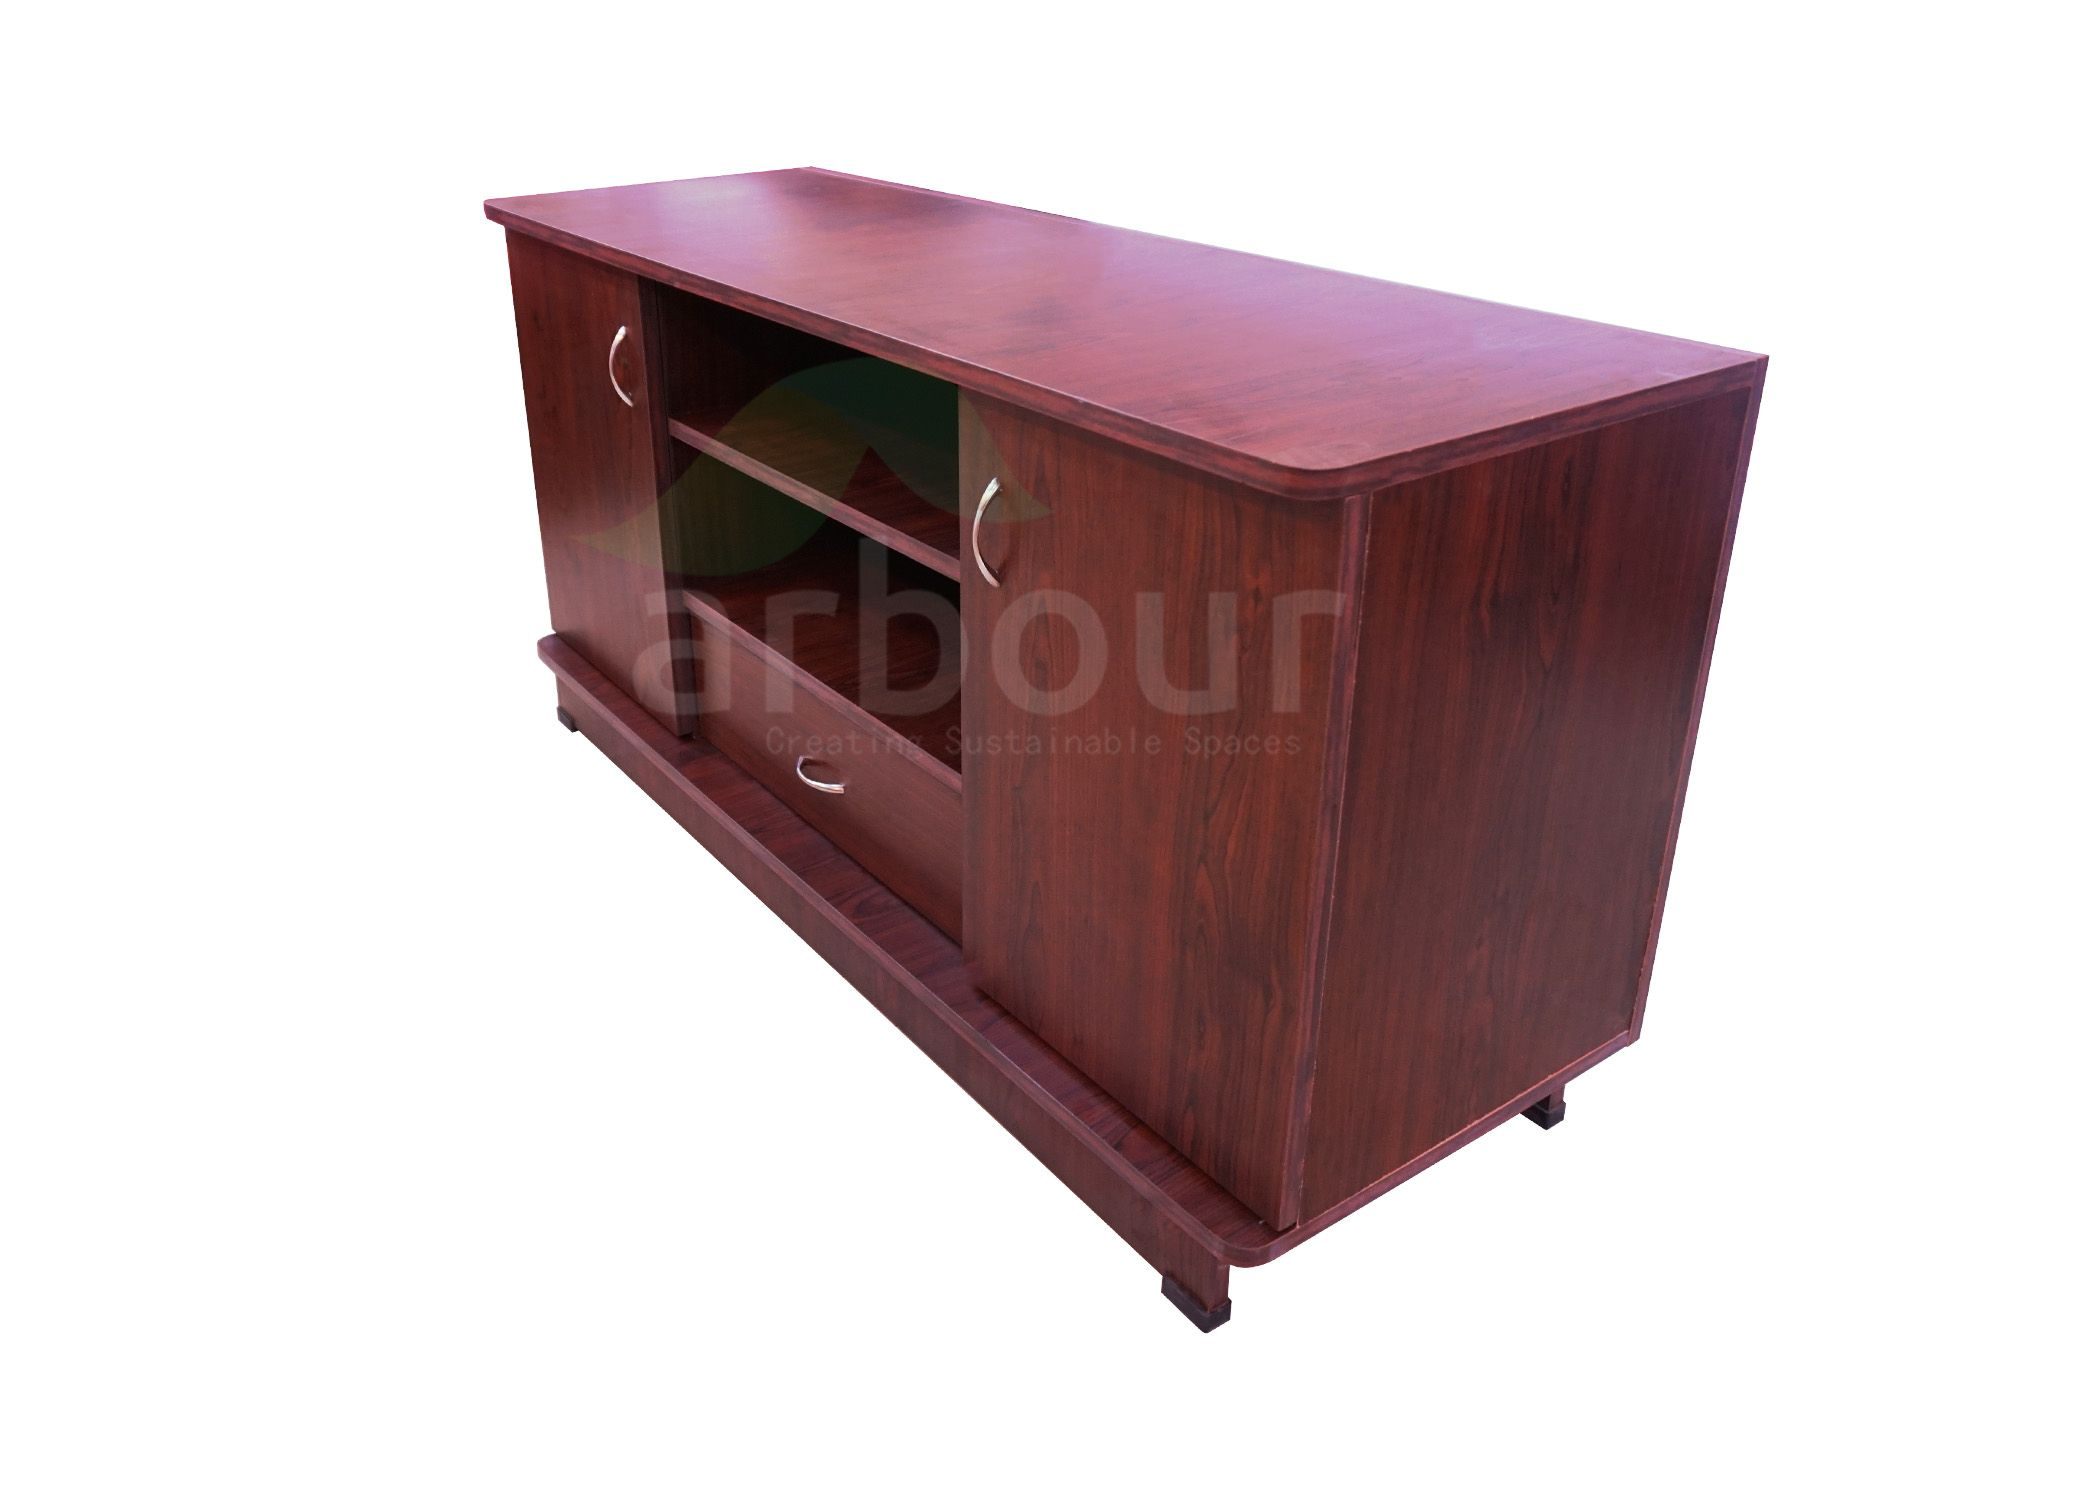 Arbour Quality Tv Stand Manufacturer In Bangalore We Sell Cheap Second Hand Tv Table Tv Unit And Tv Cabinet O Second Hand Sofas Used Chairs Second Hand Chairs